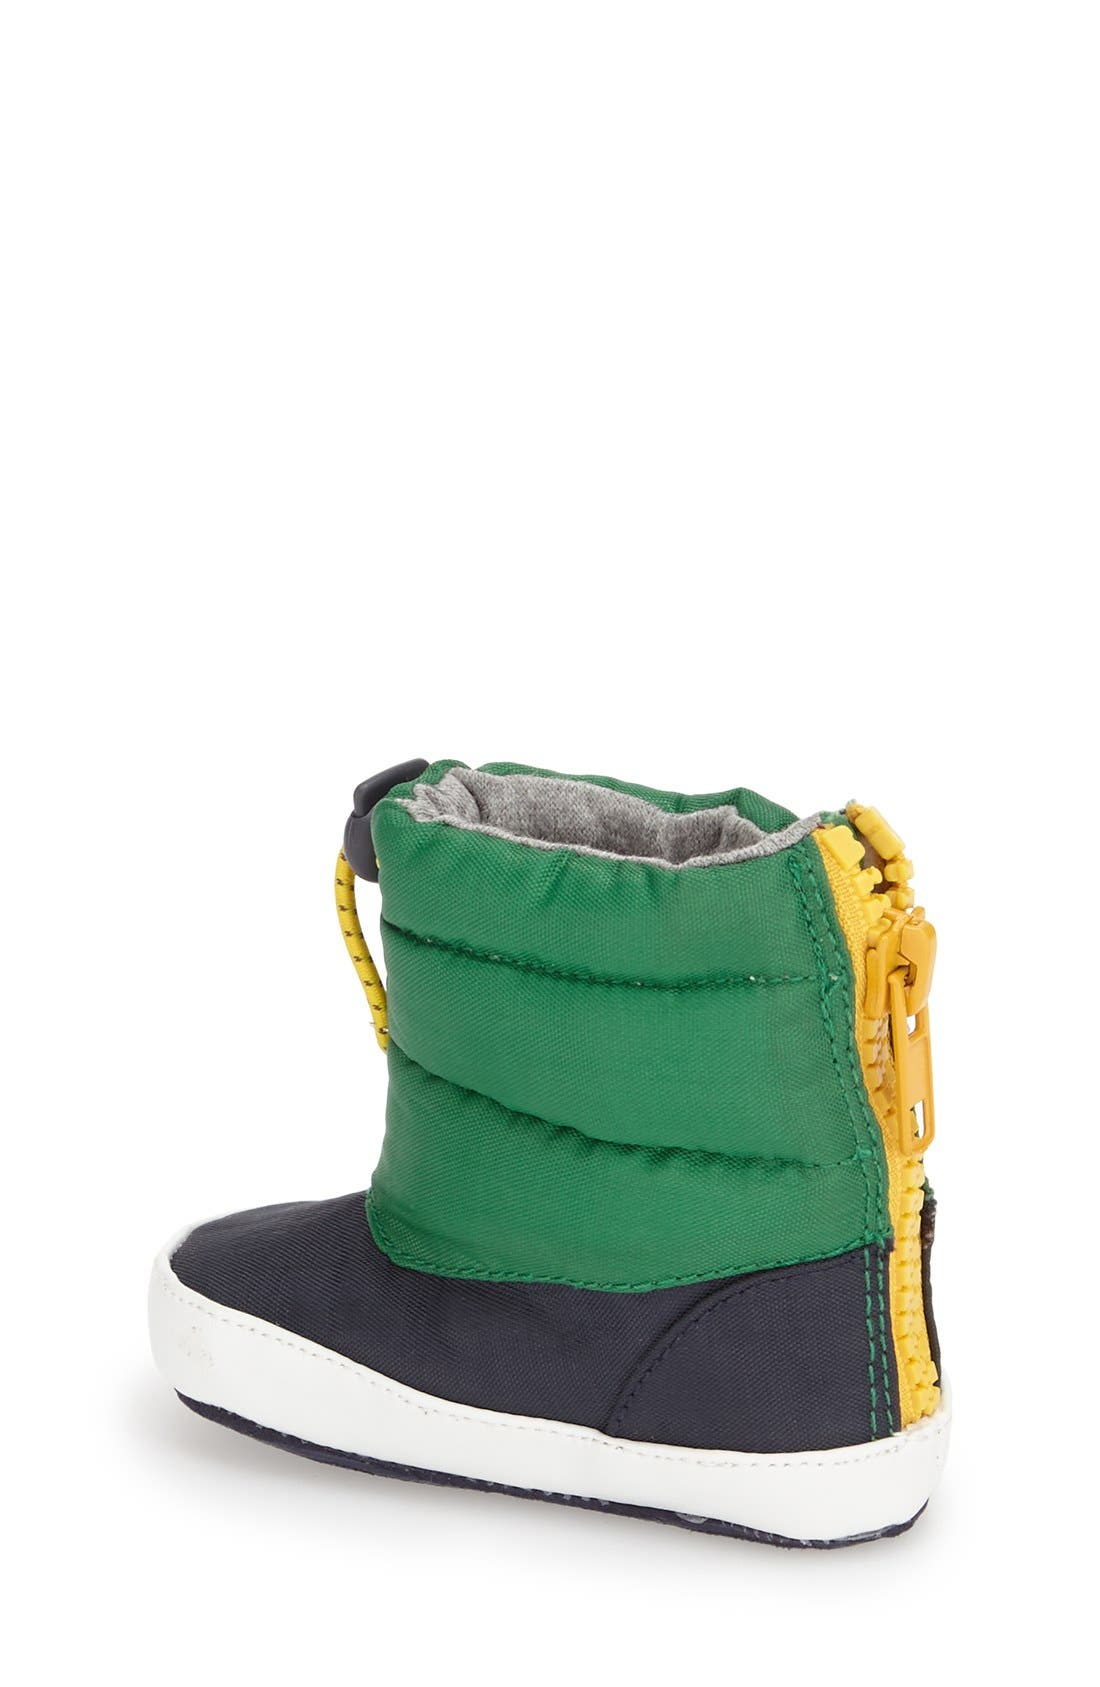 TOMMY HILFIGER,                             'LilMadison' Boot,                             Alternate thumbnail 4, color,                             303